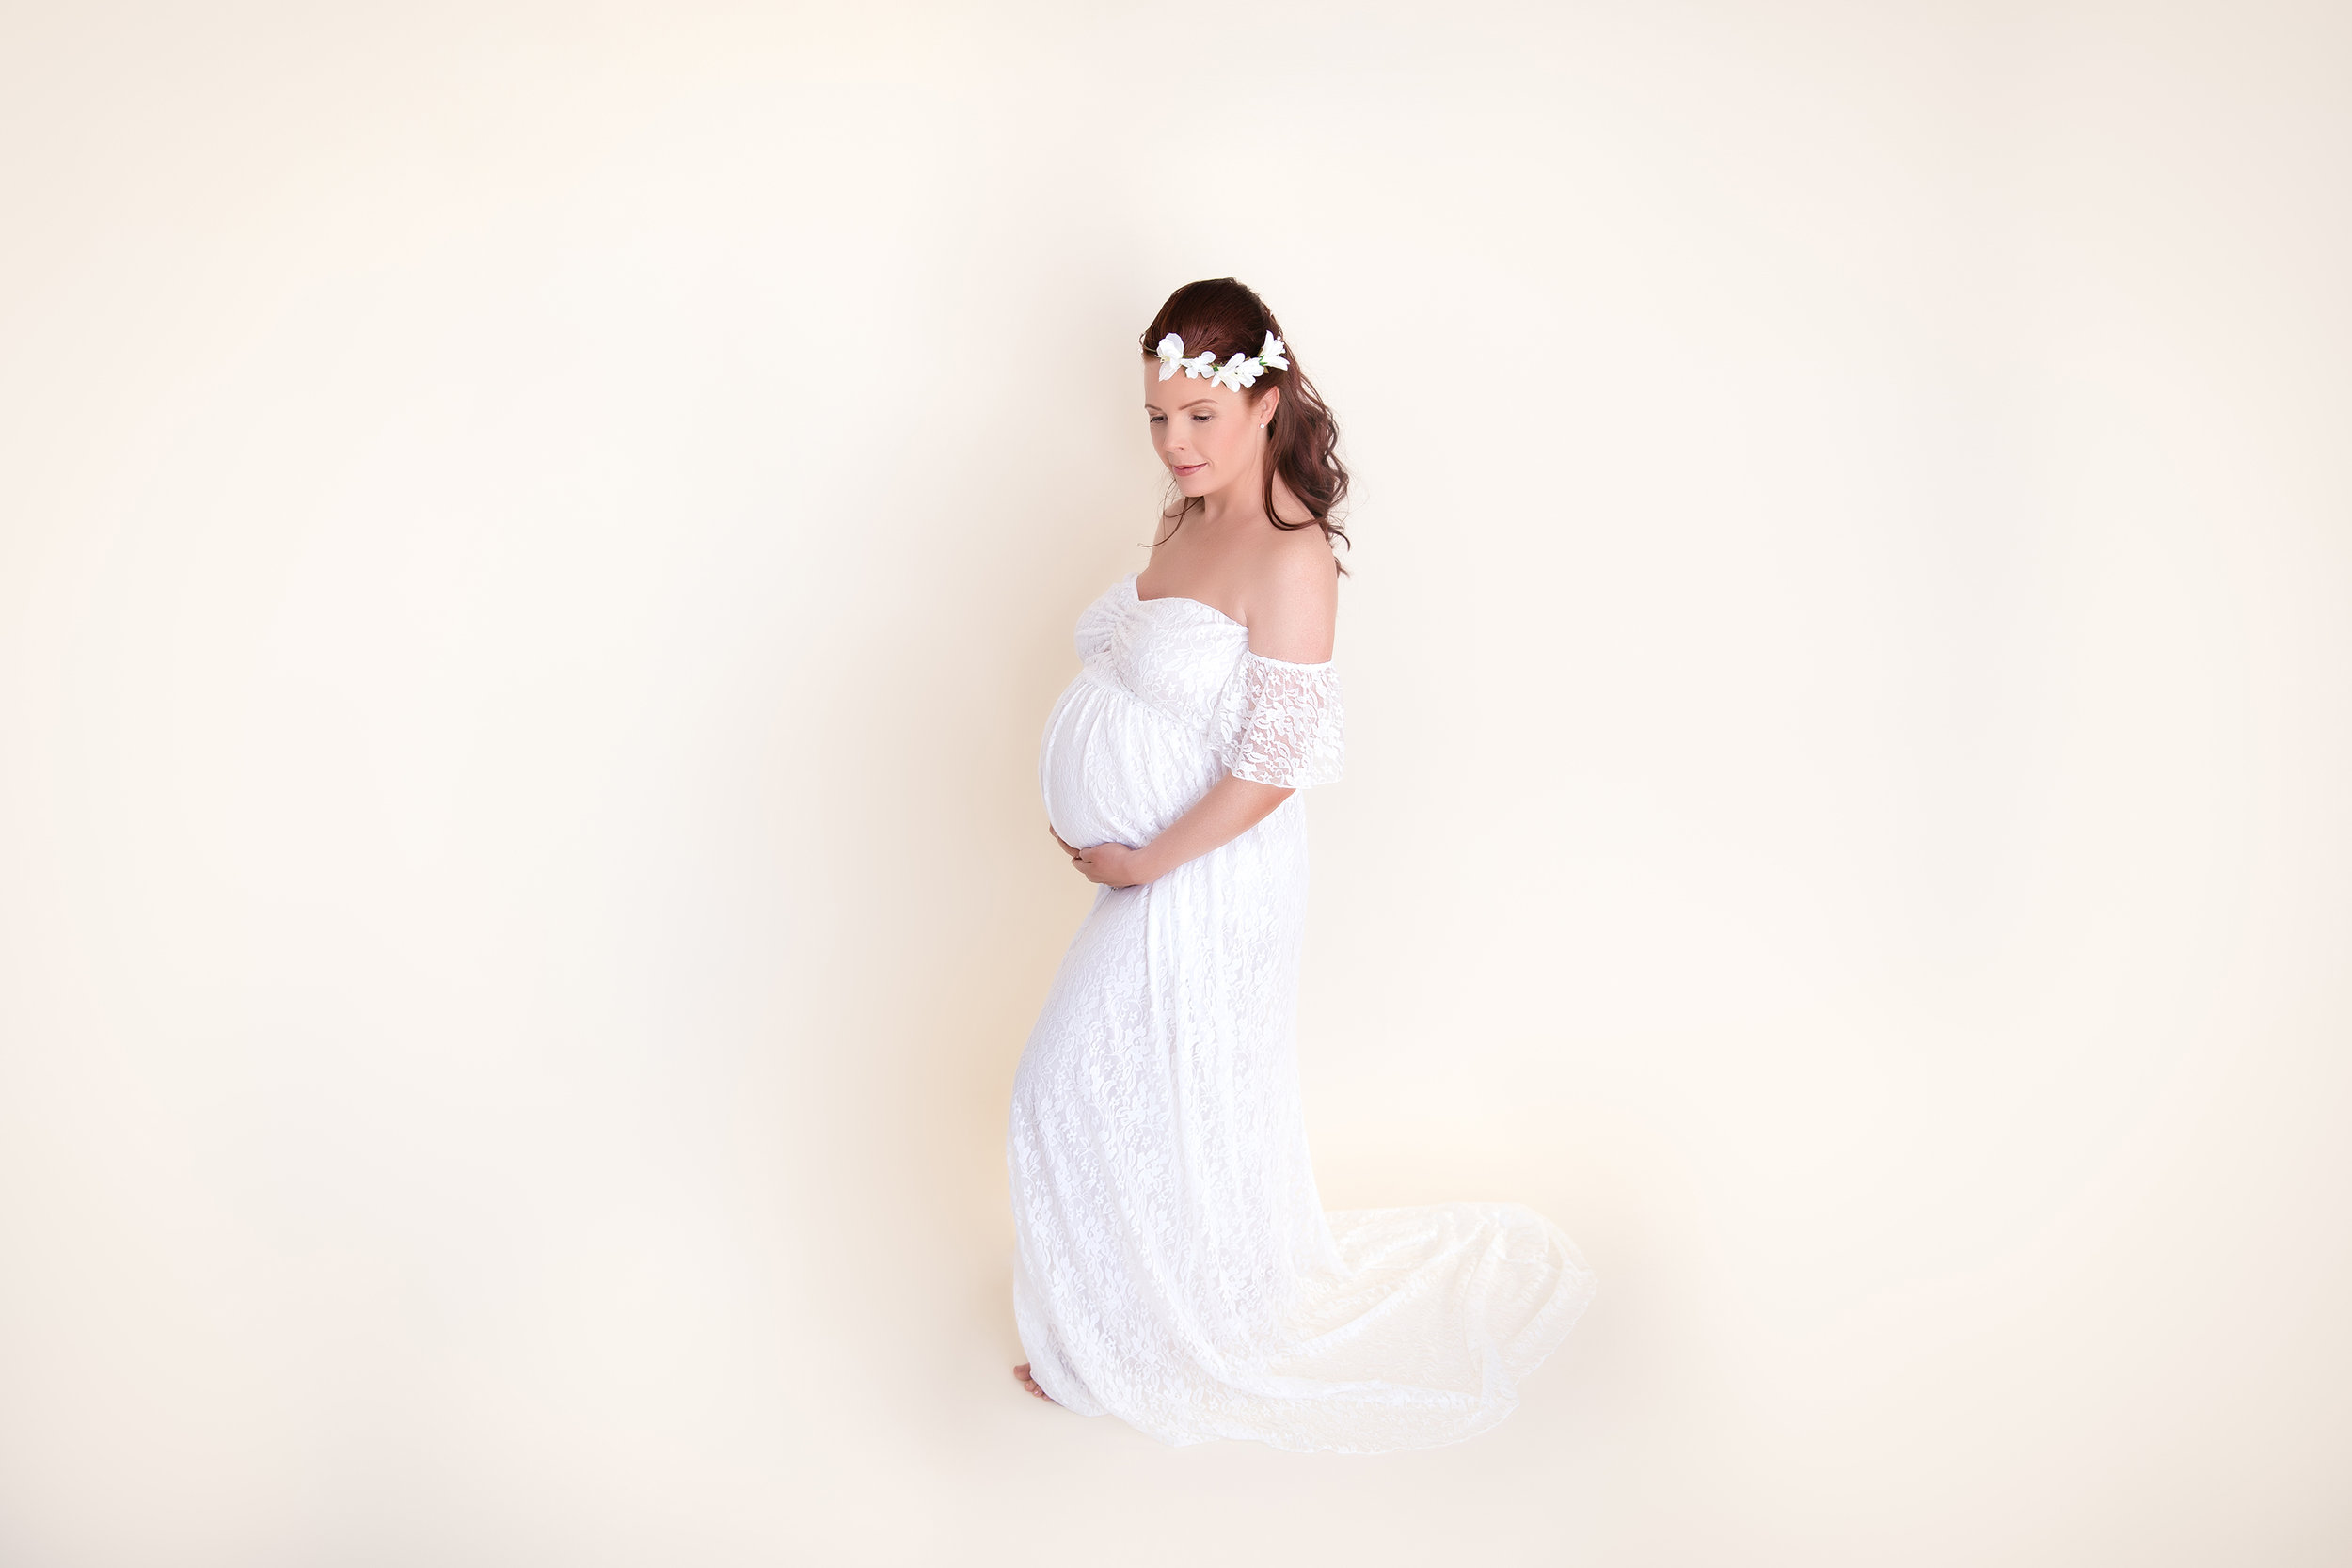 Mother to be is wearing a white gown - maternity photoshoot ideas - Calgary maternity photographer